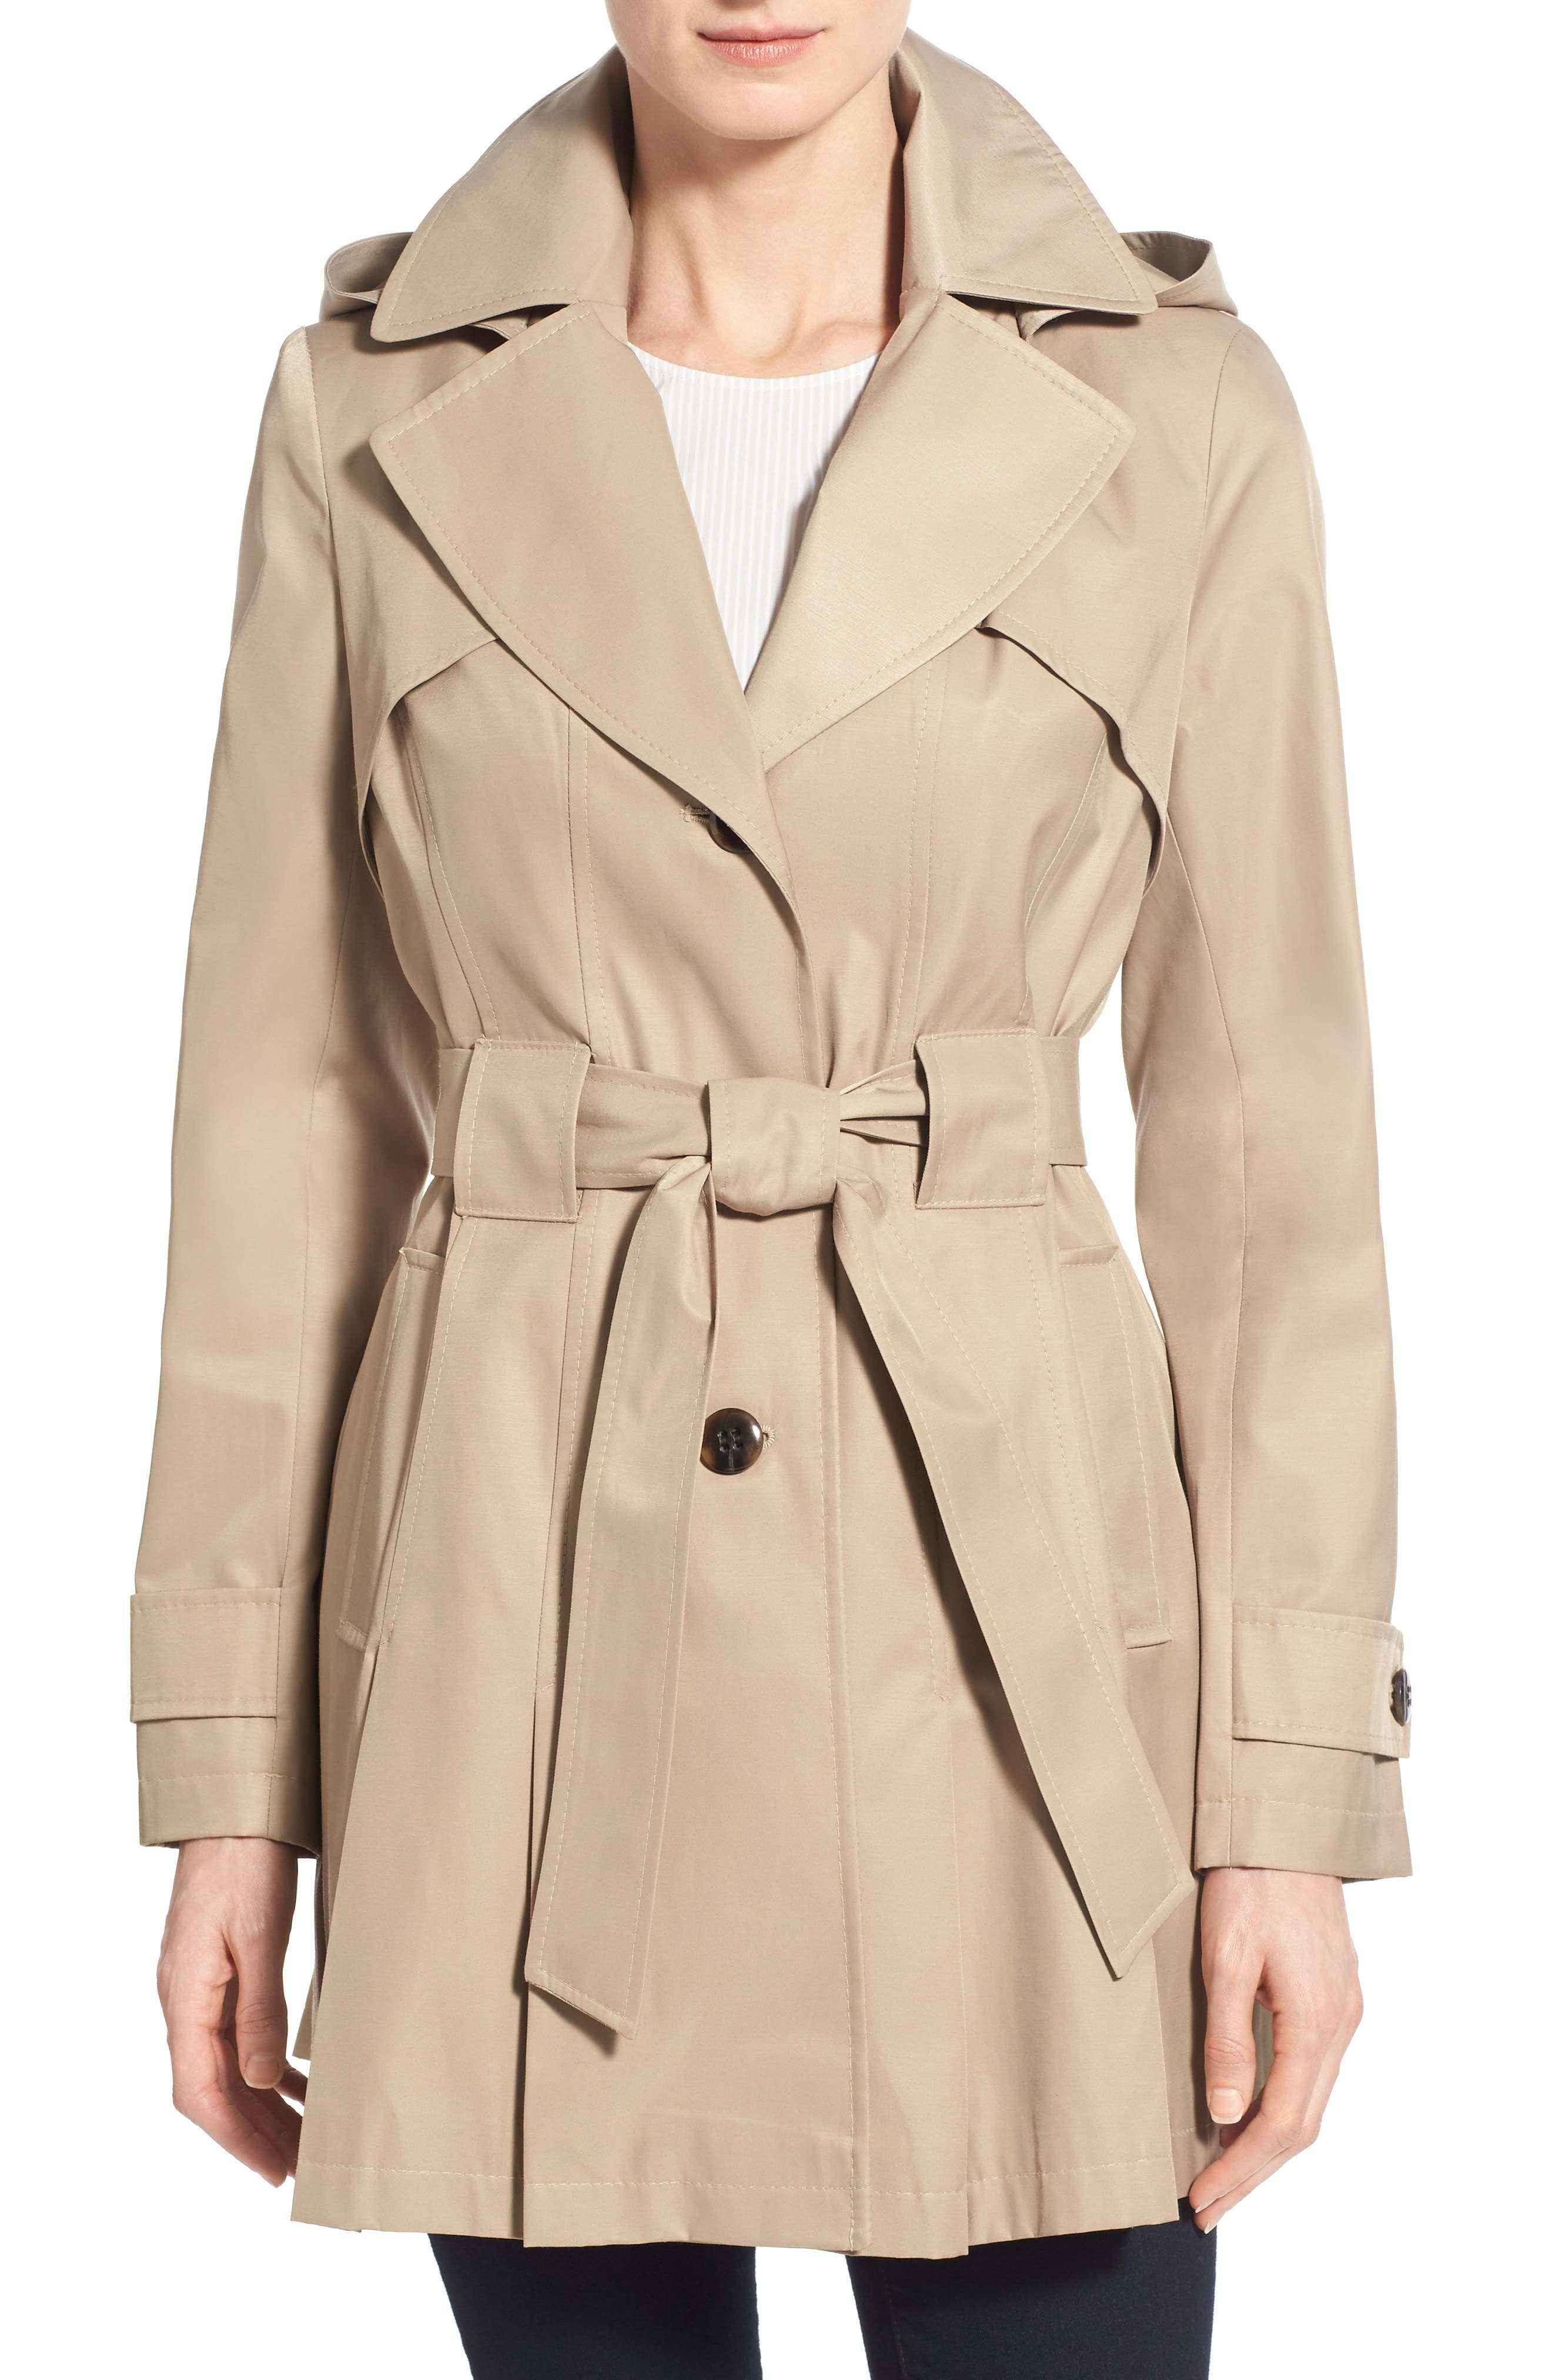 'Scarpa' Hooded Single Breasted Trench Coat,                             Alternate thumbnail 12, color,